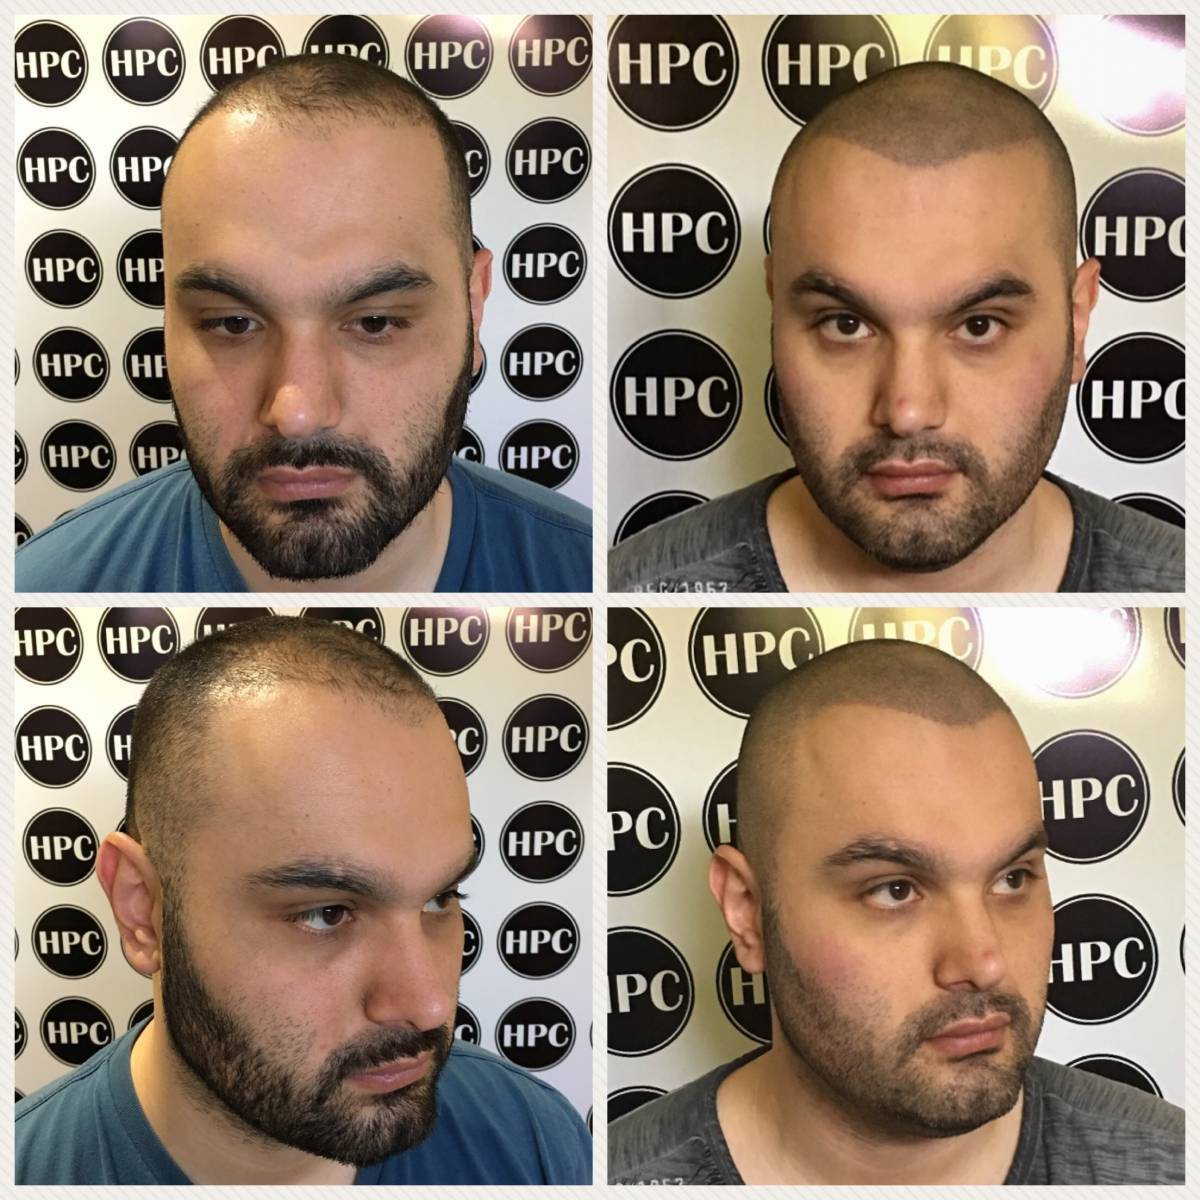 scalp-micropigmentation-10-22-15